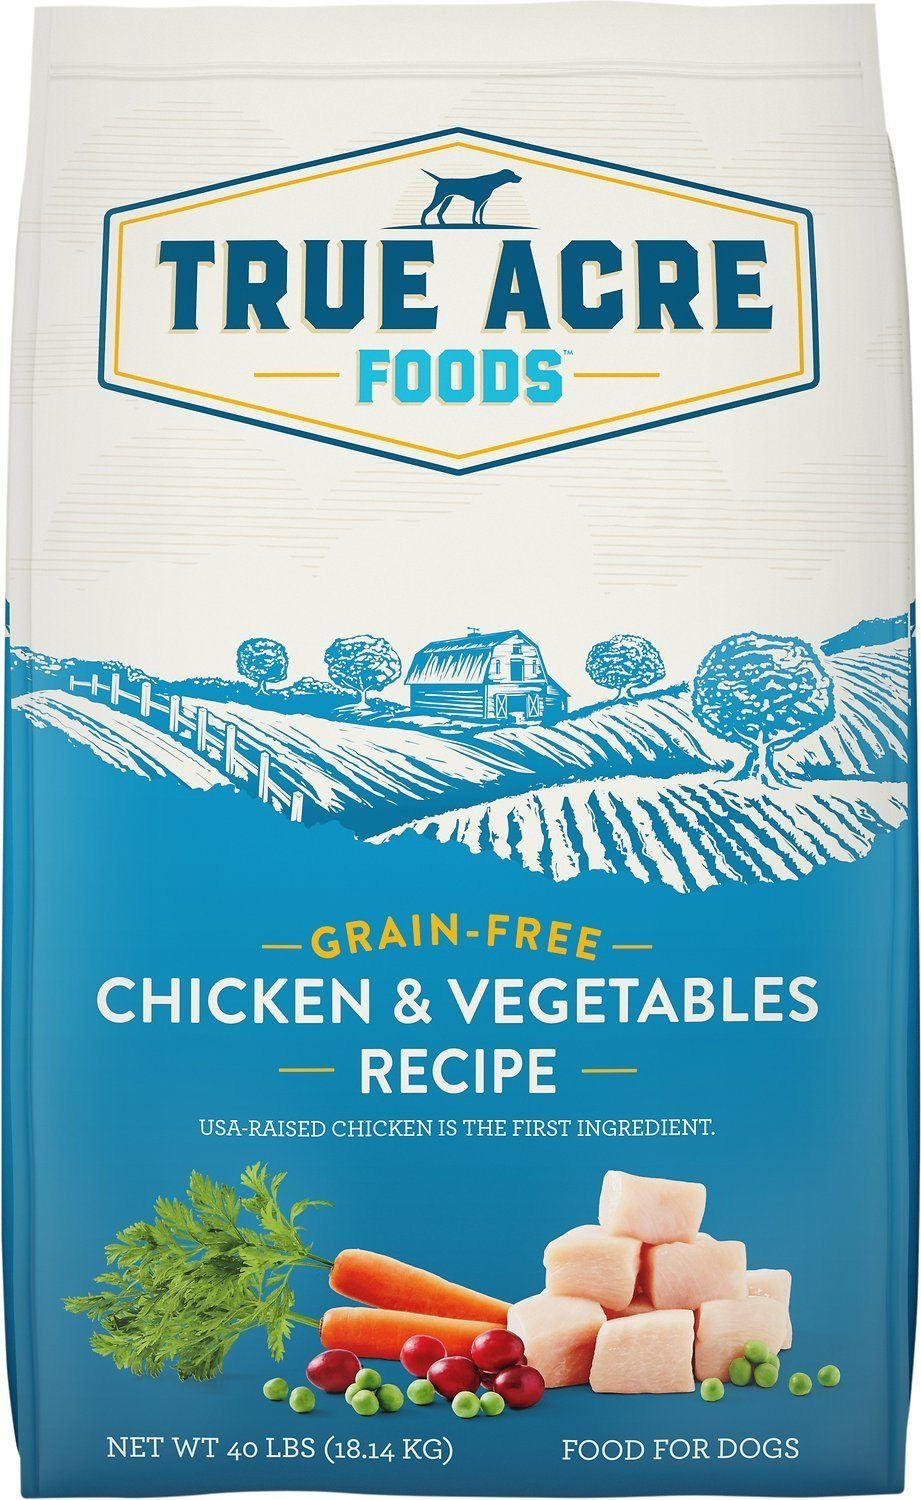 True Acre Foods Chicken & Vegetable Recipe Grain-Free Dry Dog Food,  - Canine's World